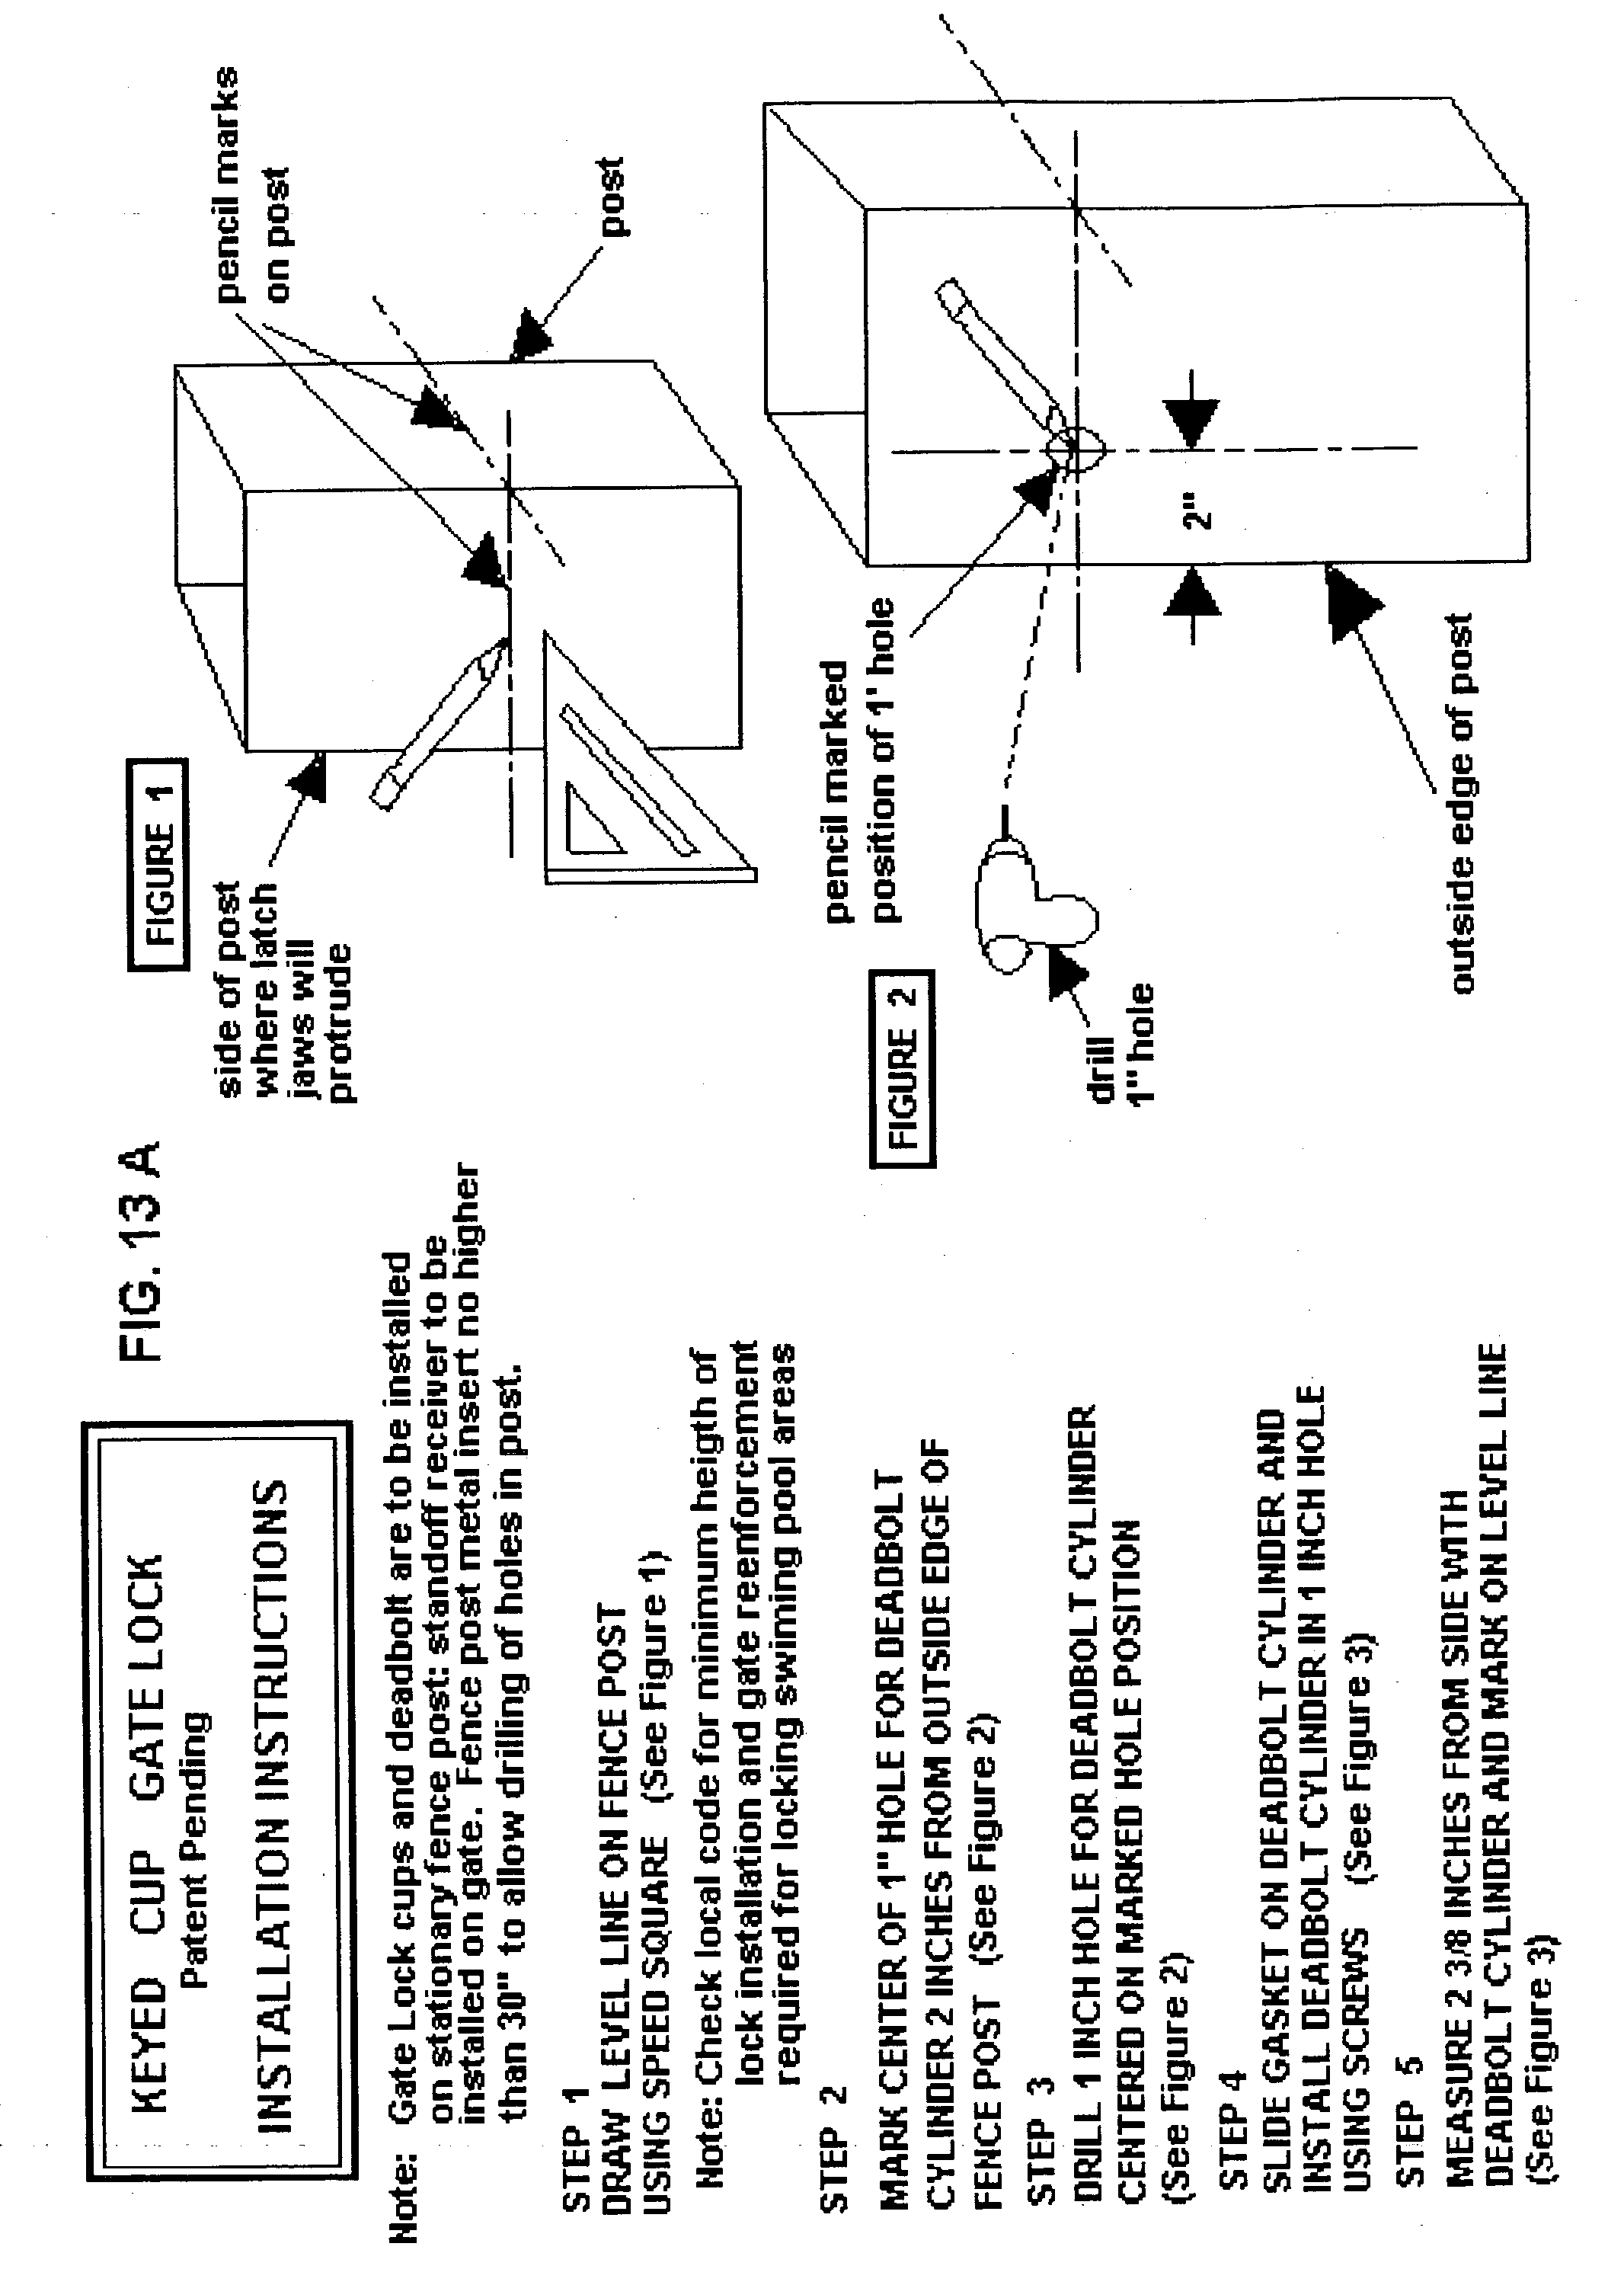 Patent us20040177659 deadbolt vinyl gate fence lock and system patent drawing baanklon Image collections